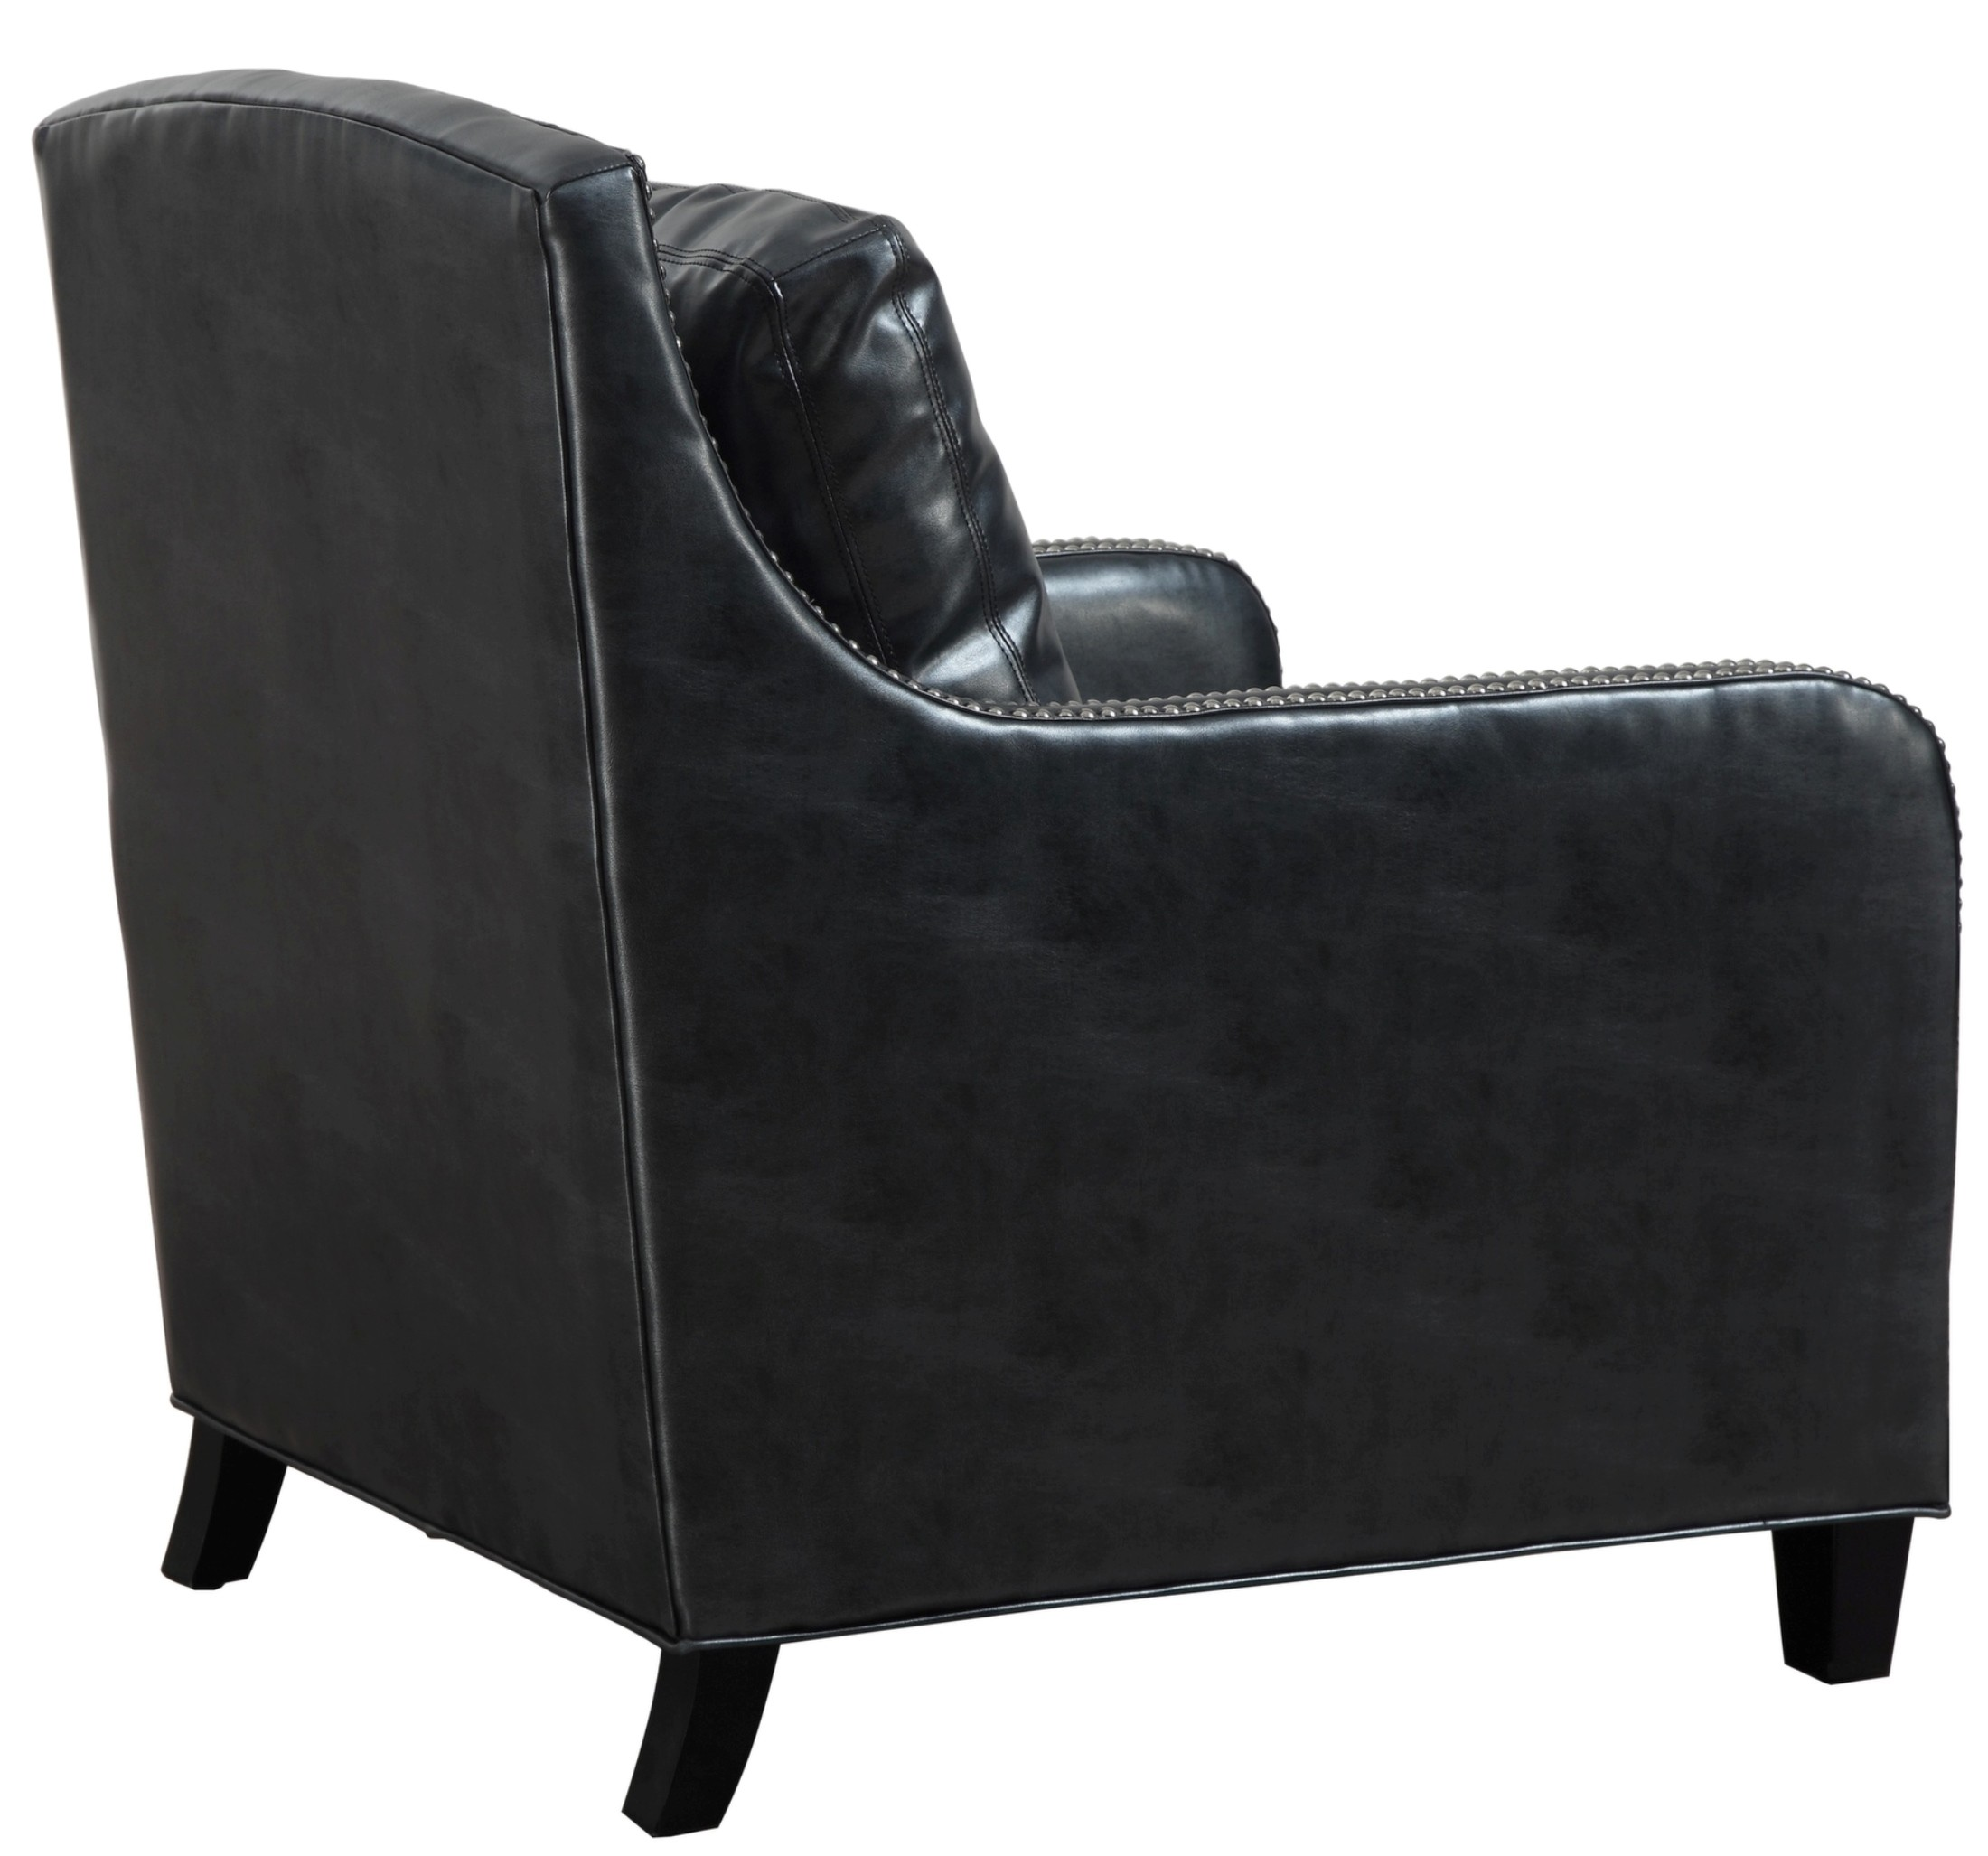 Greenwich Graphite Metallic Leather Club Chair From Tov